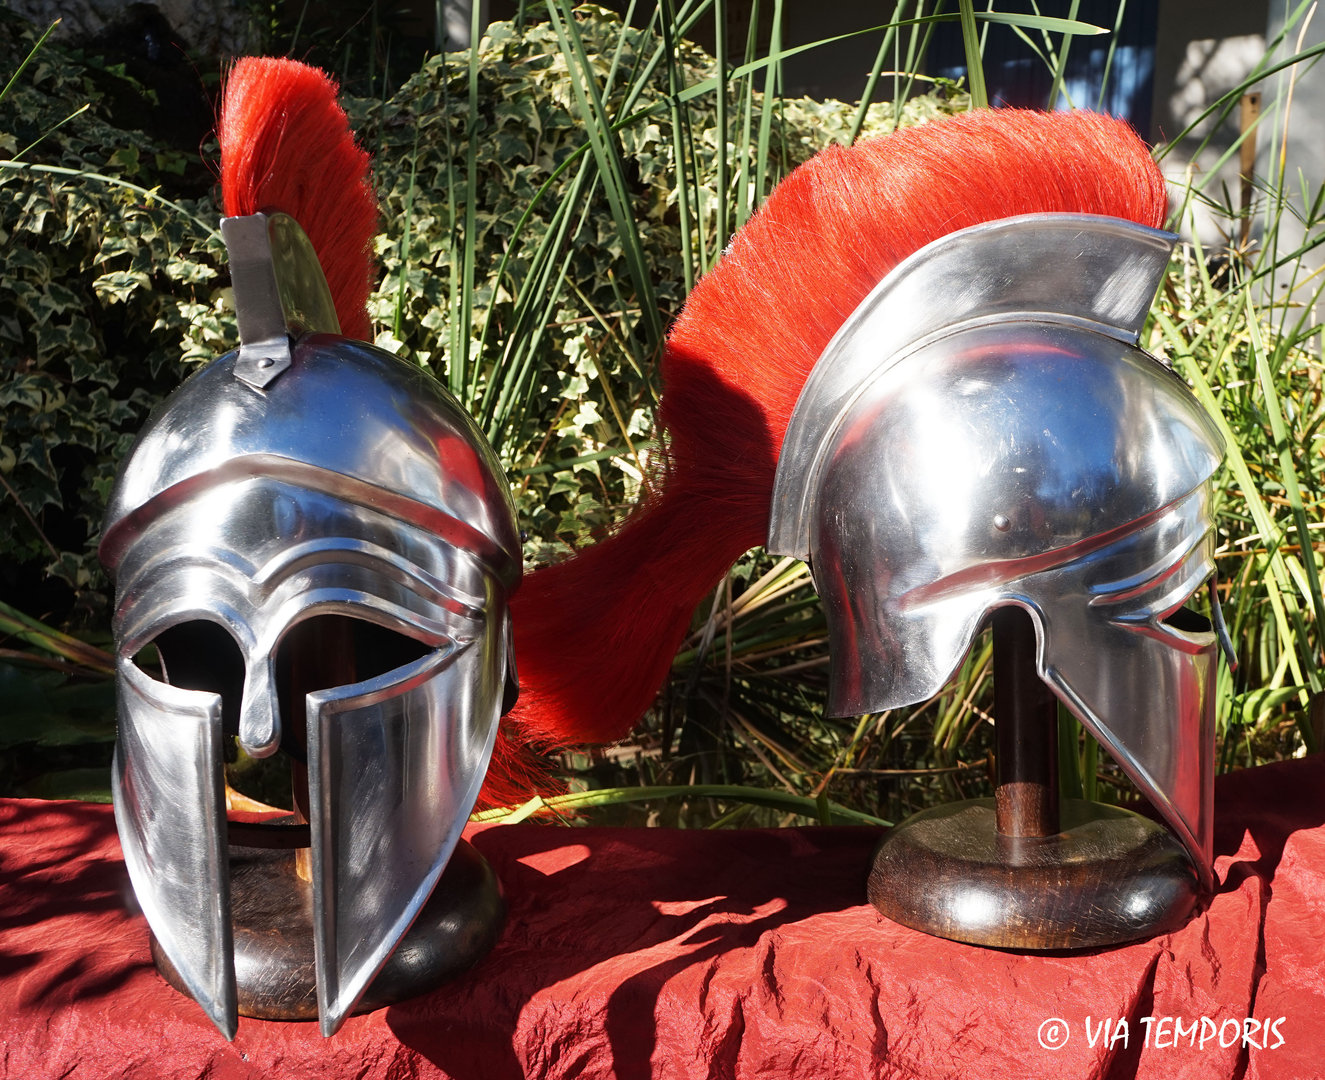 GREEK - CORINTHIAN HELMET WITH RED CREST